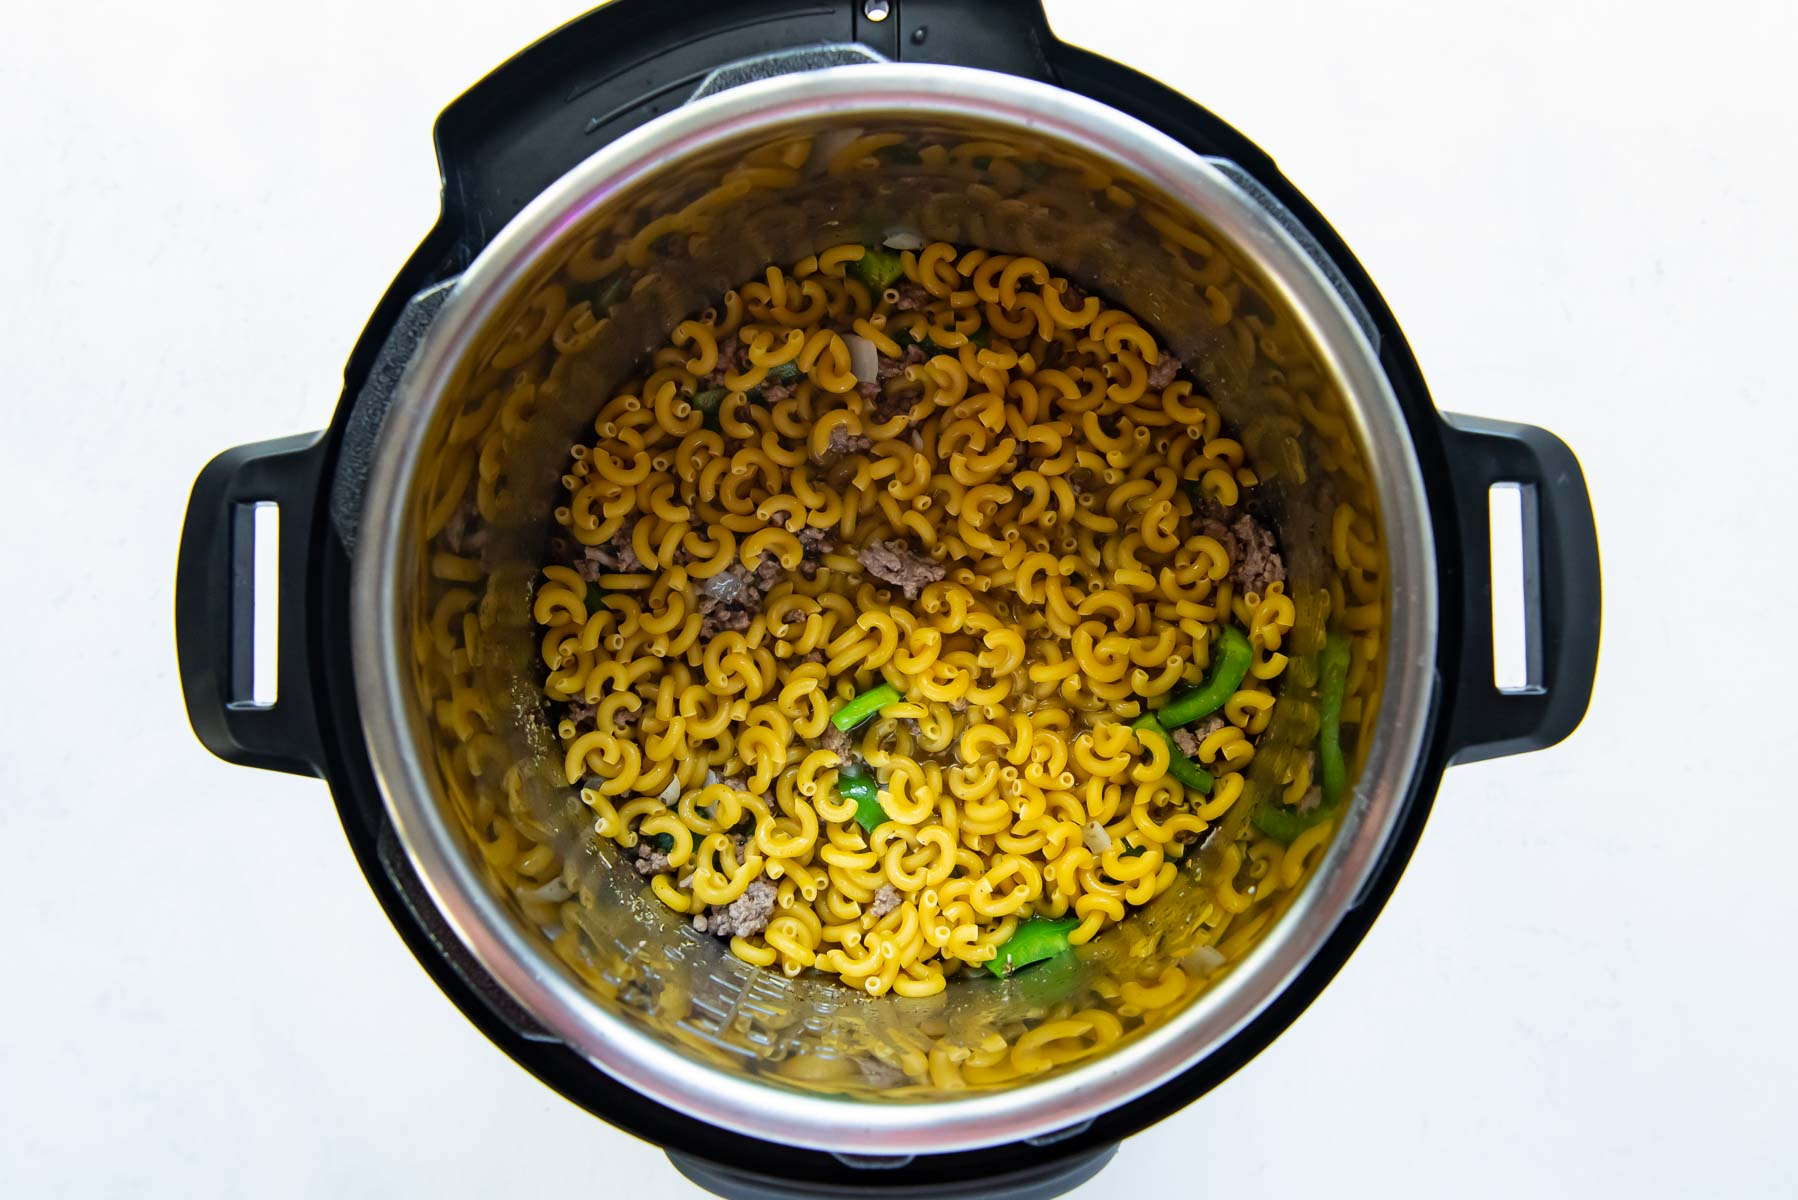 pasta spread into an even layer in pot